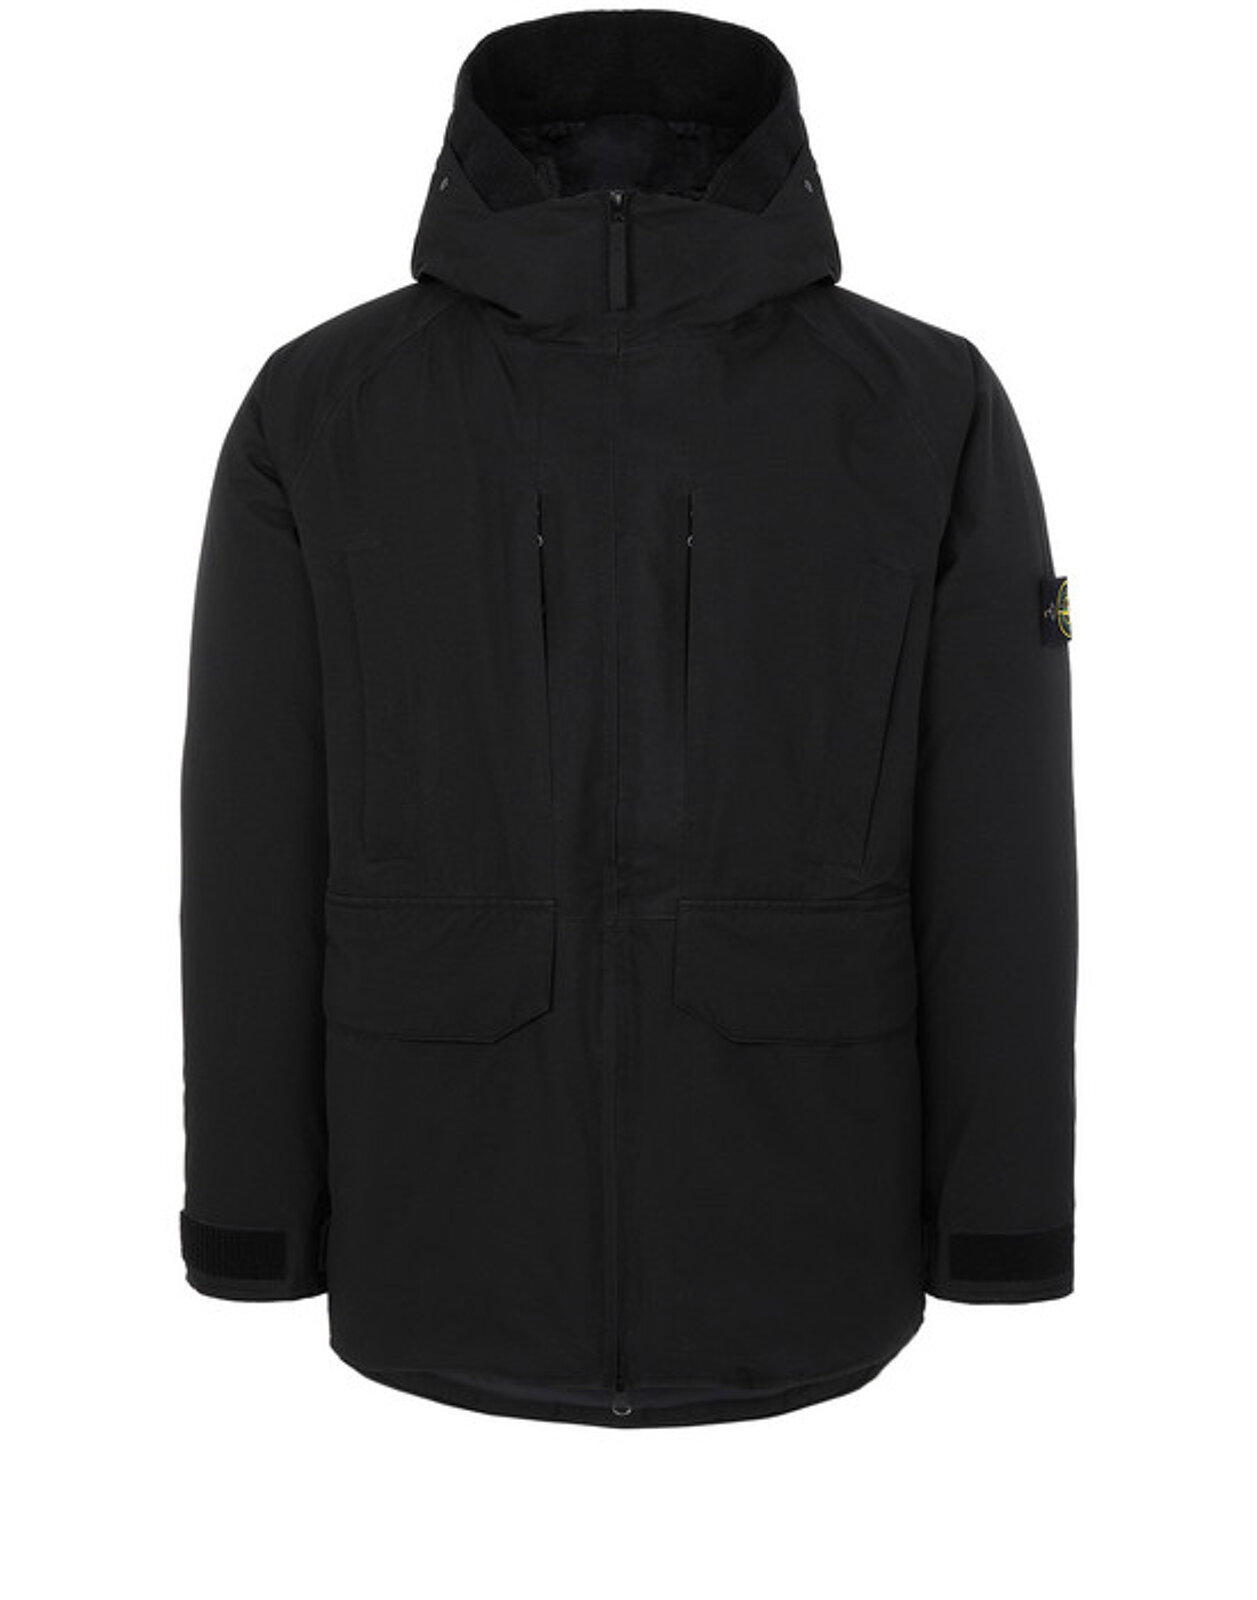 Ripstop Gore-Tex Product Technology Down - Stone Island